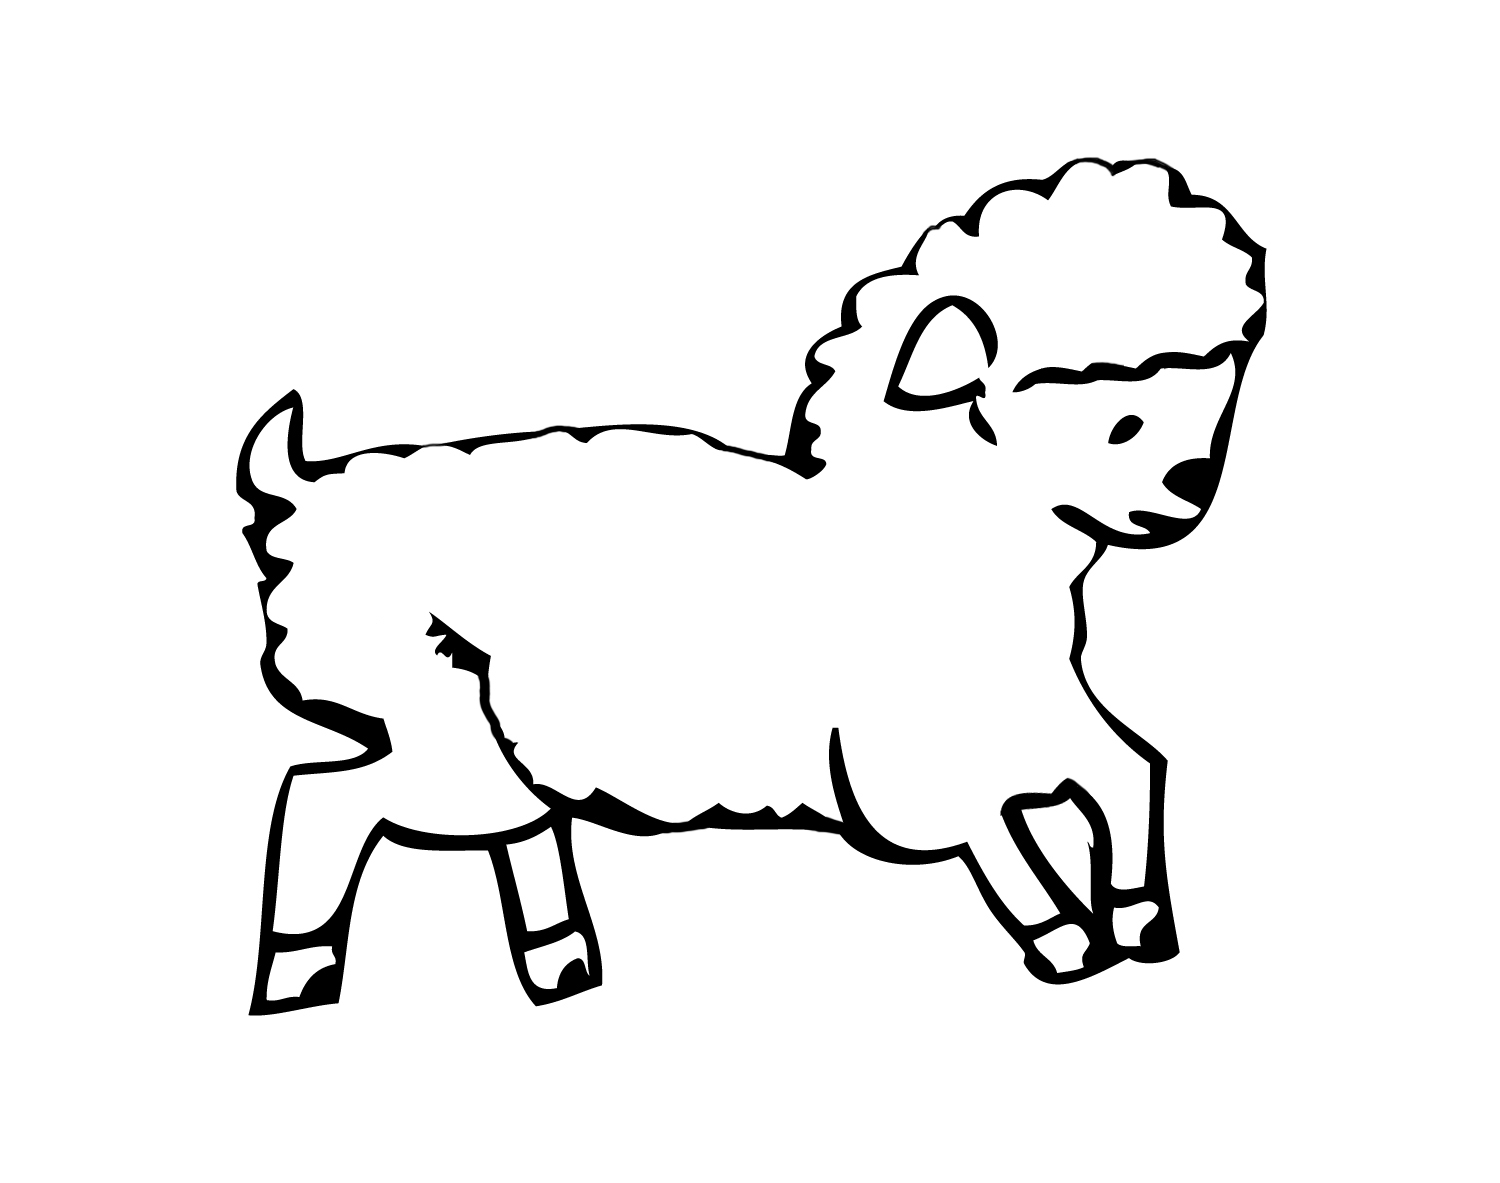 Sheep Templates Printable - ClipArt Best